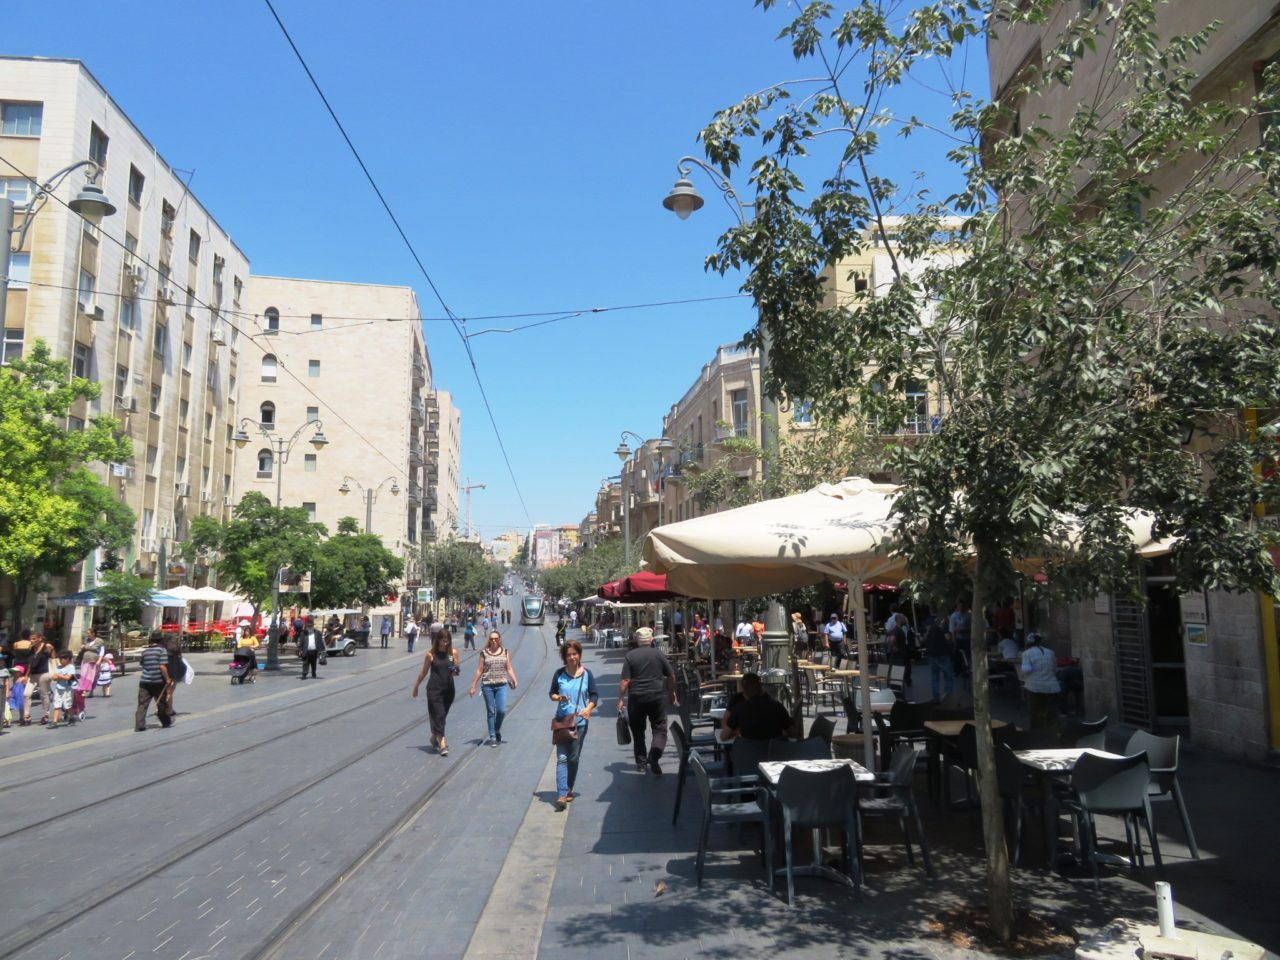 The joys of walking Jerusalem - Jaffa Street in downtown Jerusalem